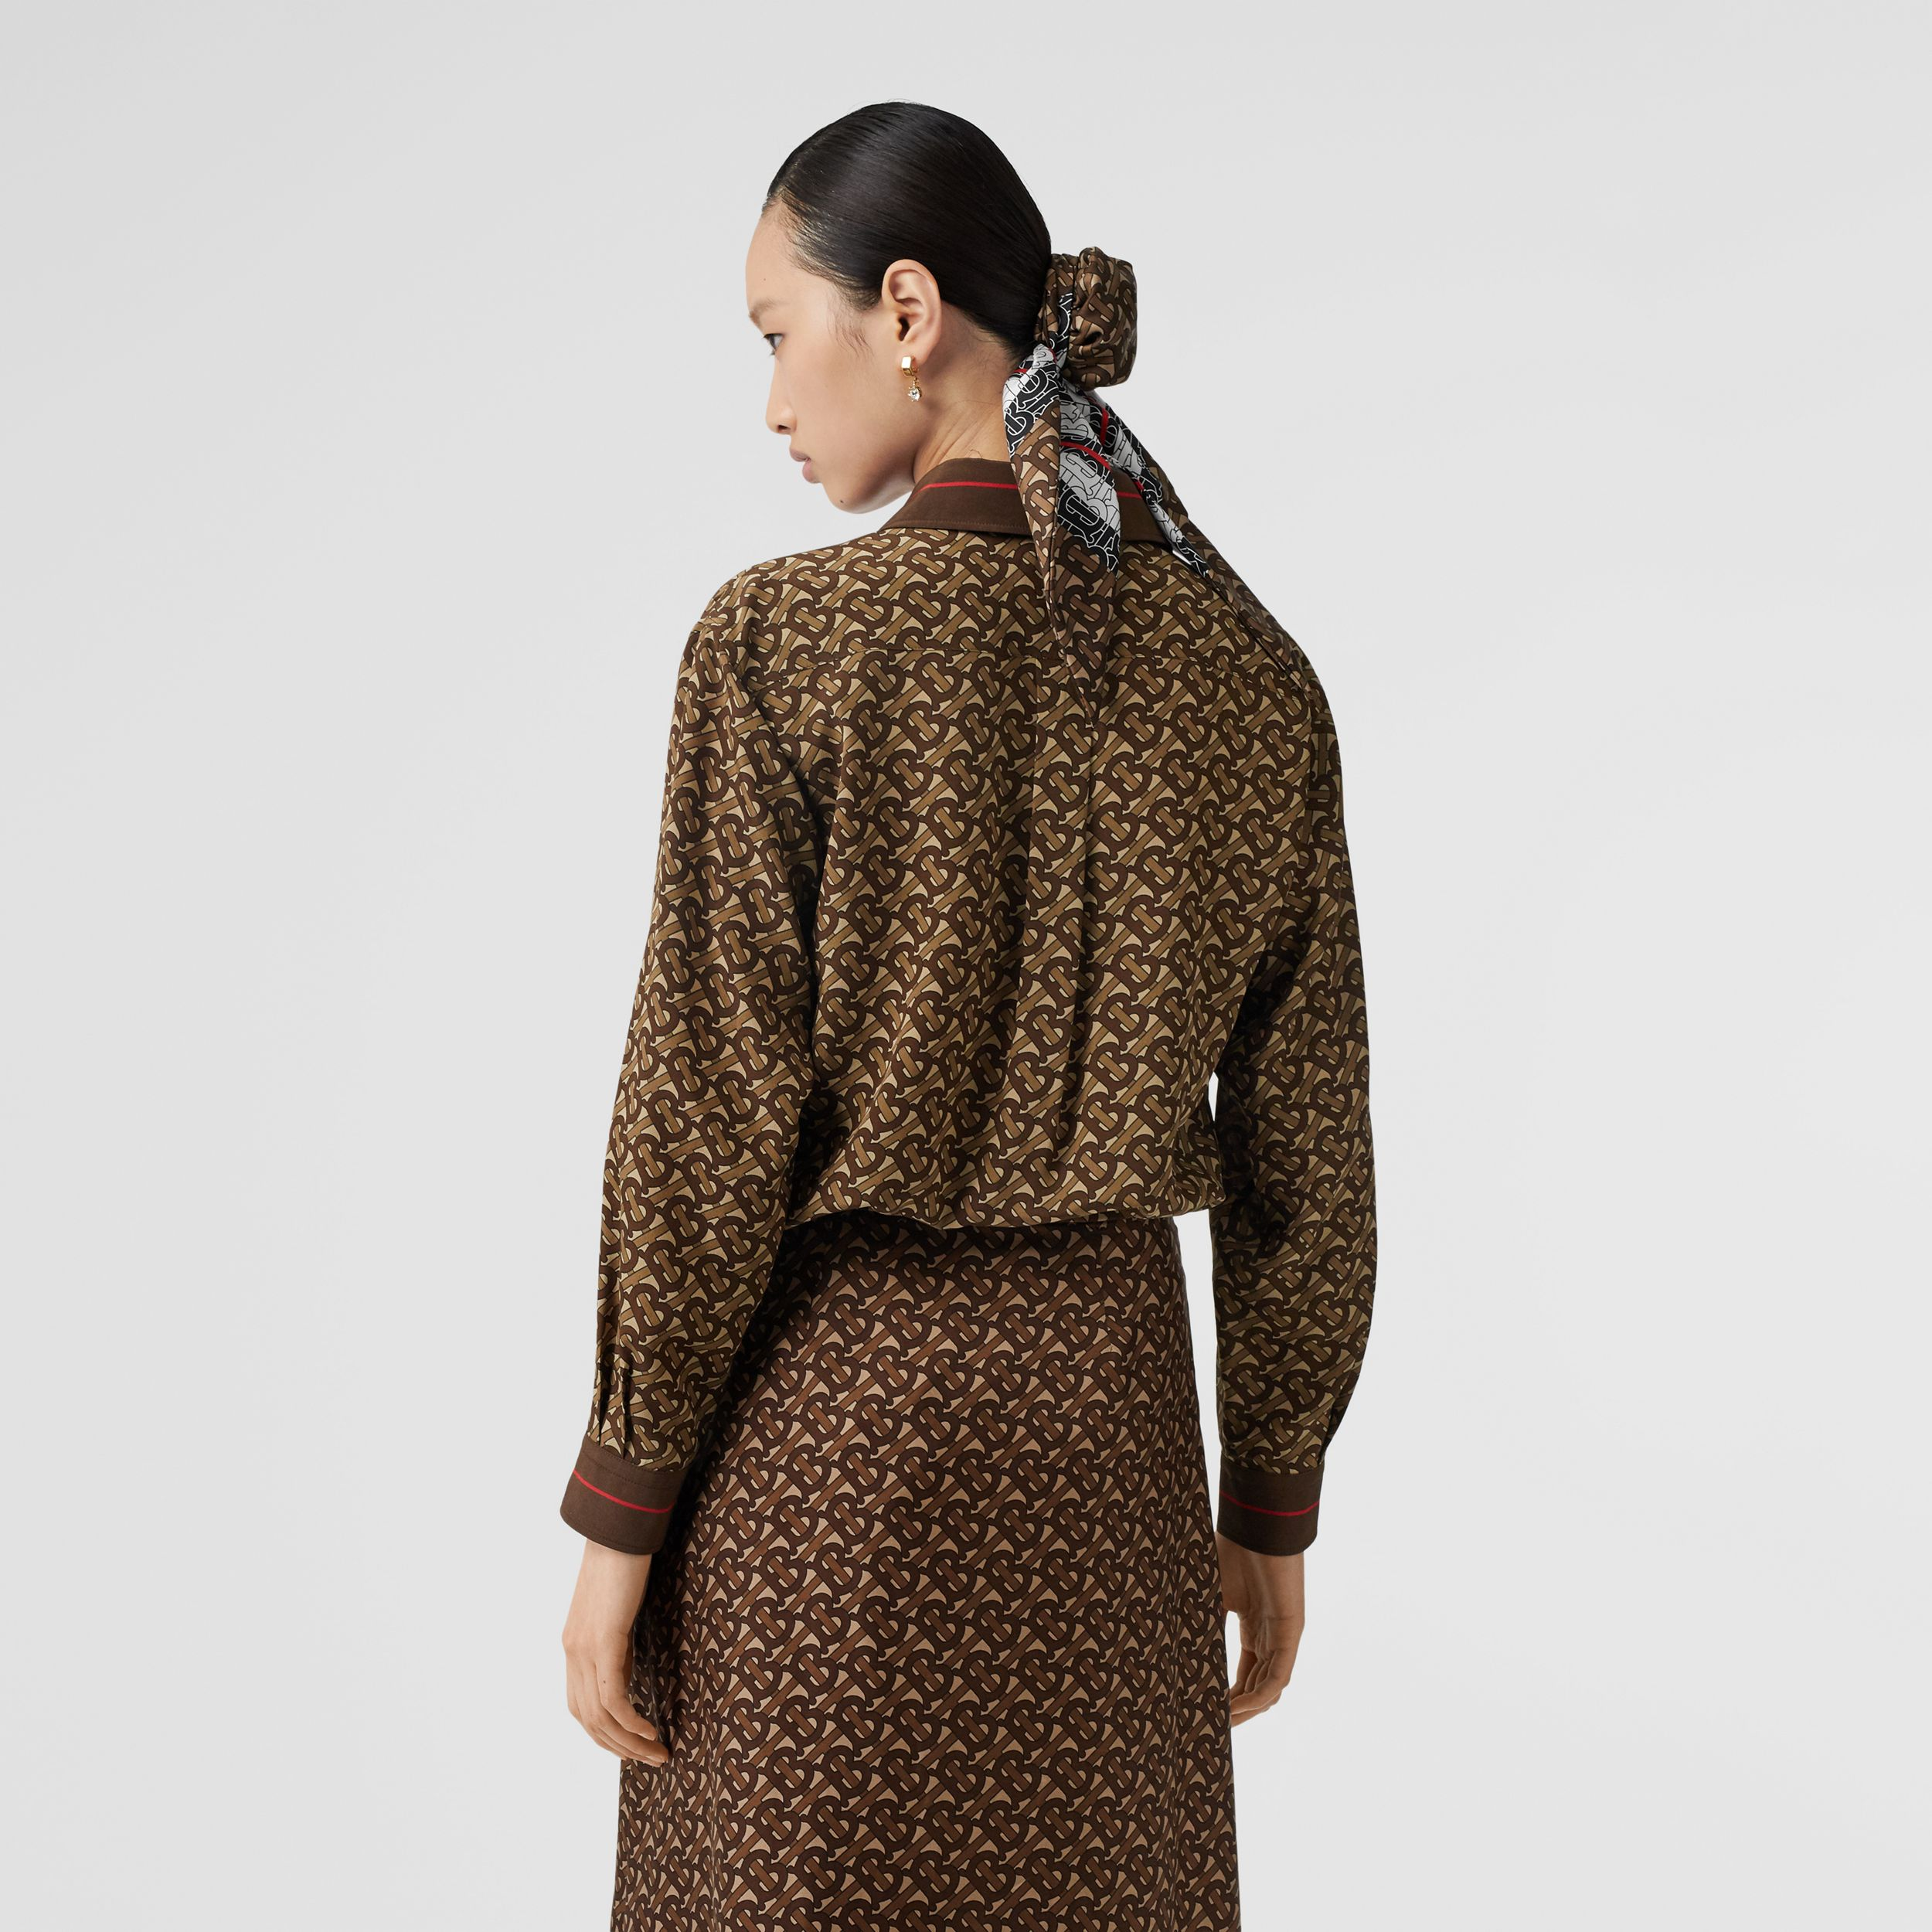 Monogram Stripe Print Silk Oversized Shirt in Bridle Brown - Women | Burberry United Kingdom - 3